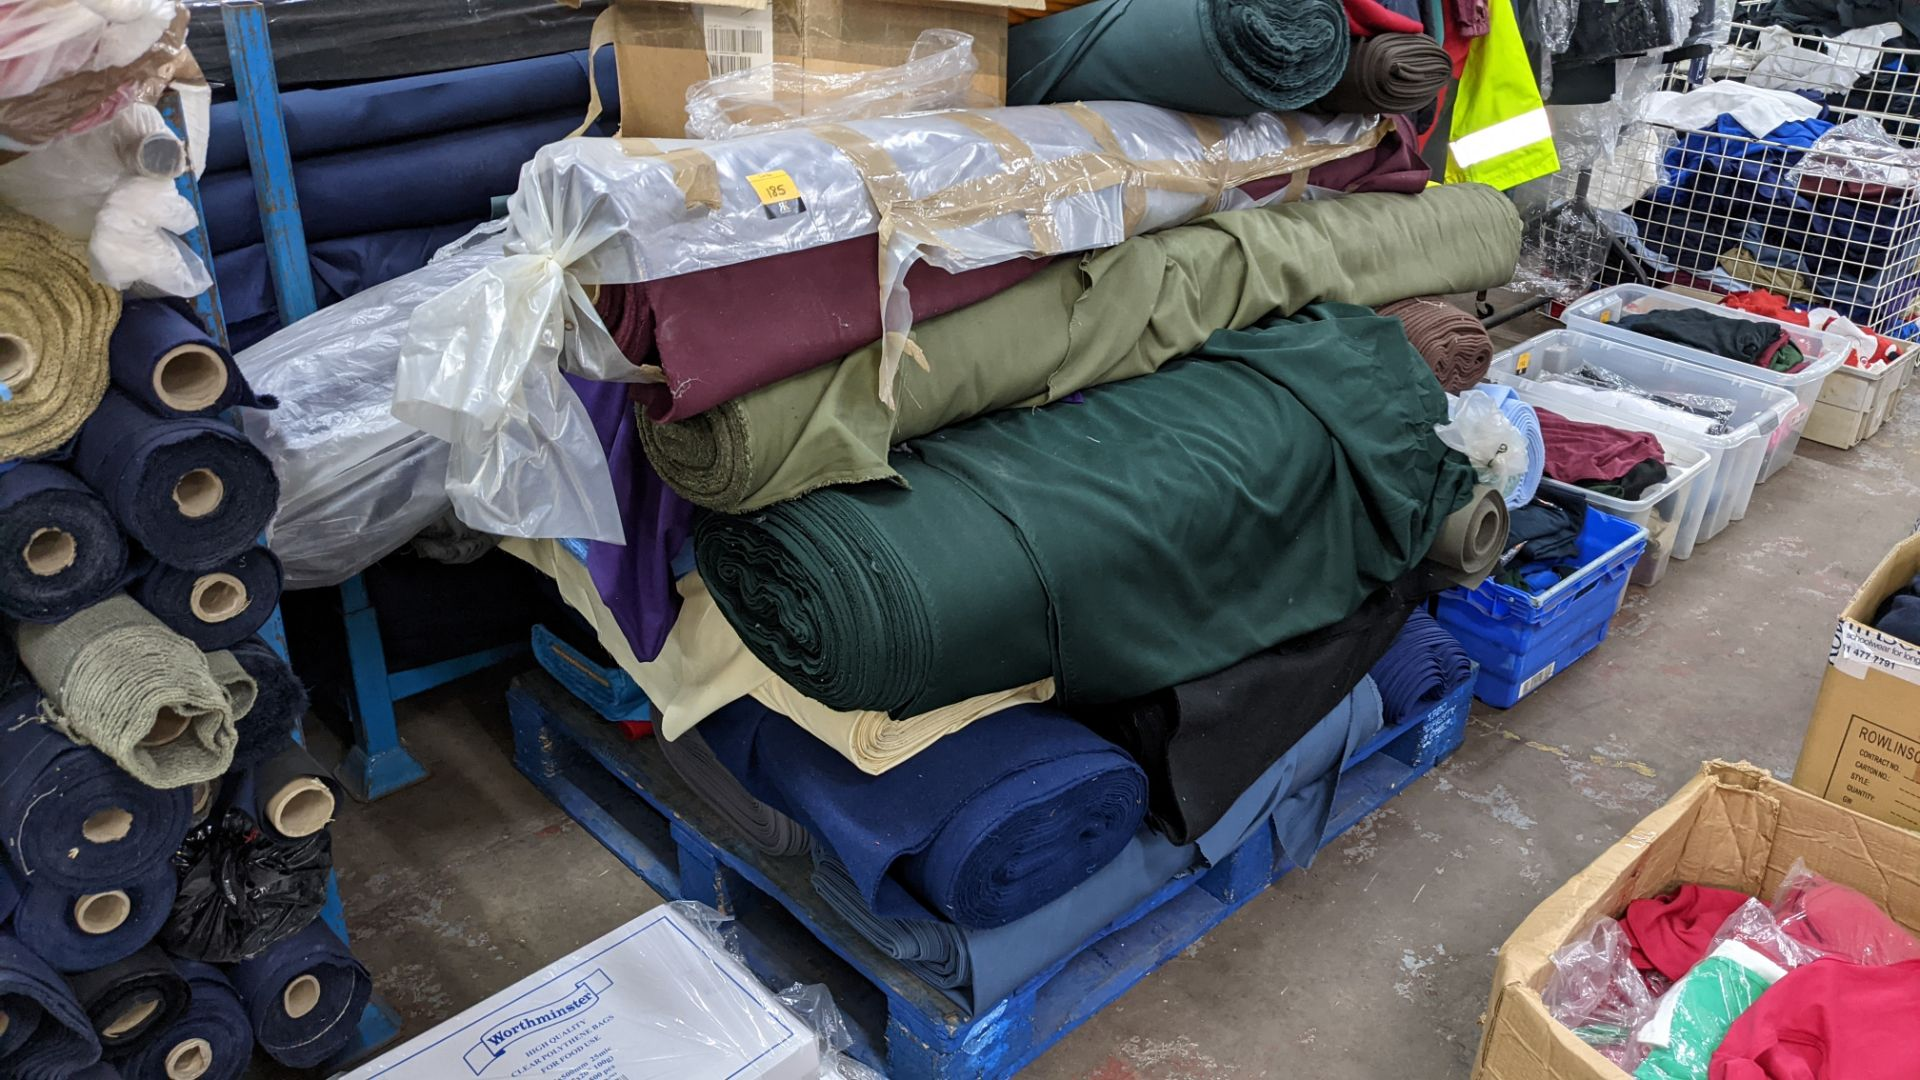 The contents of a pallet of assorted fabric